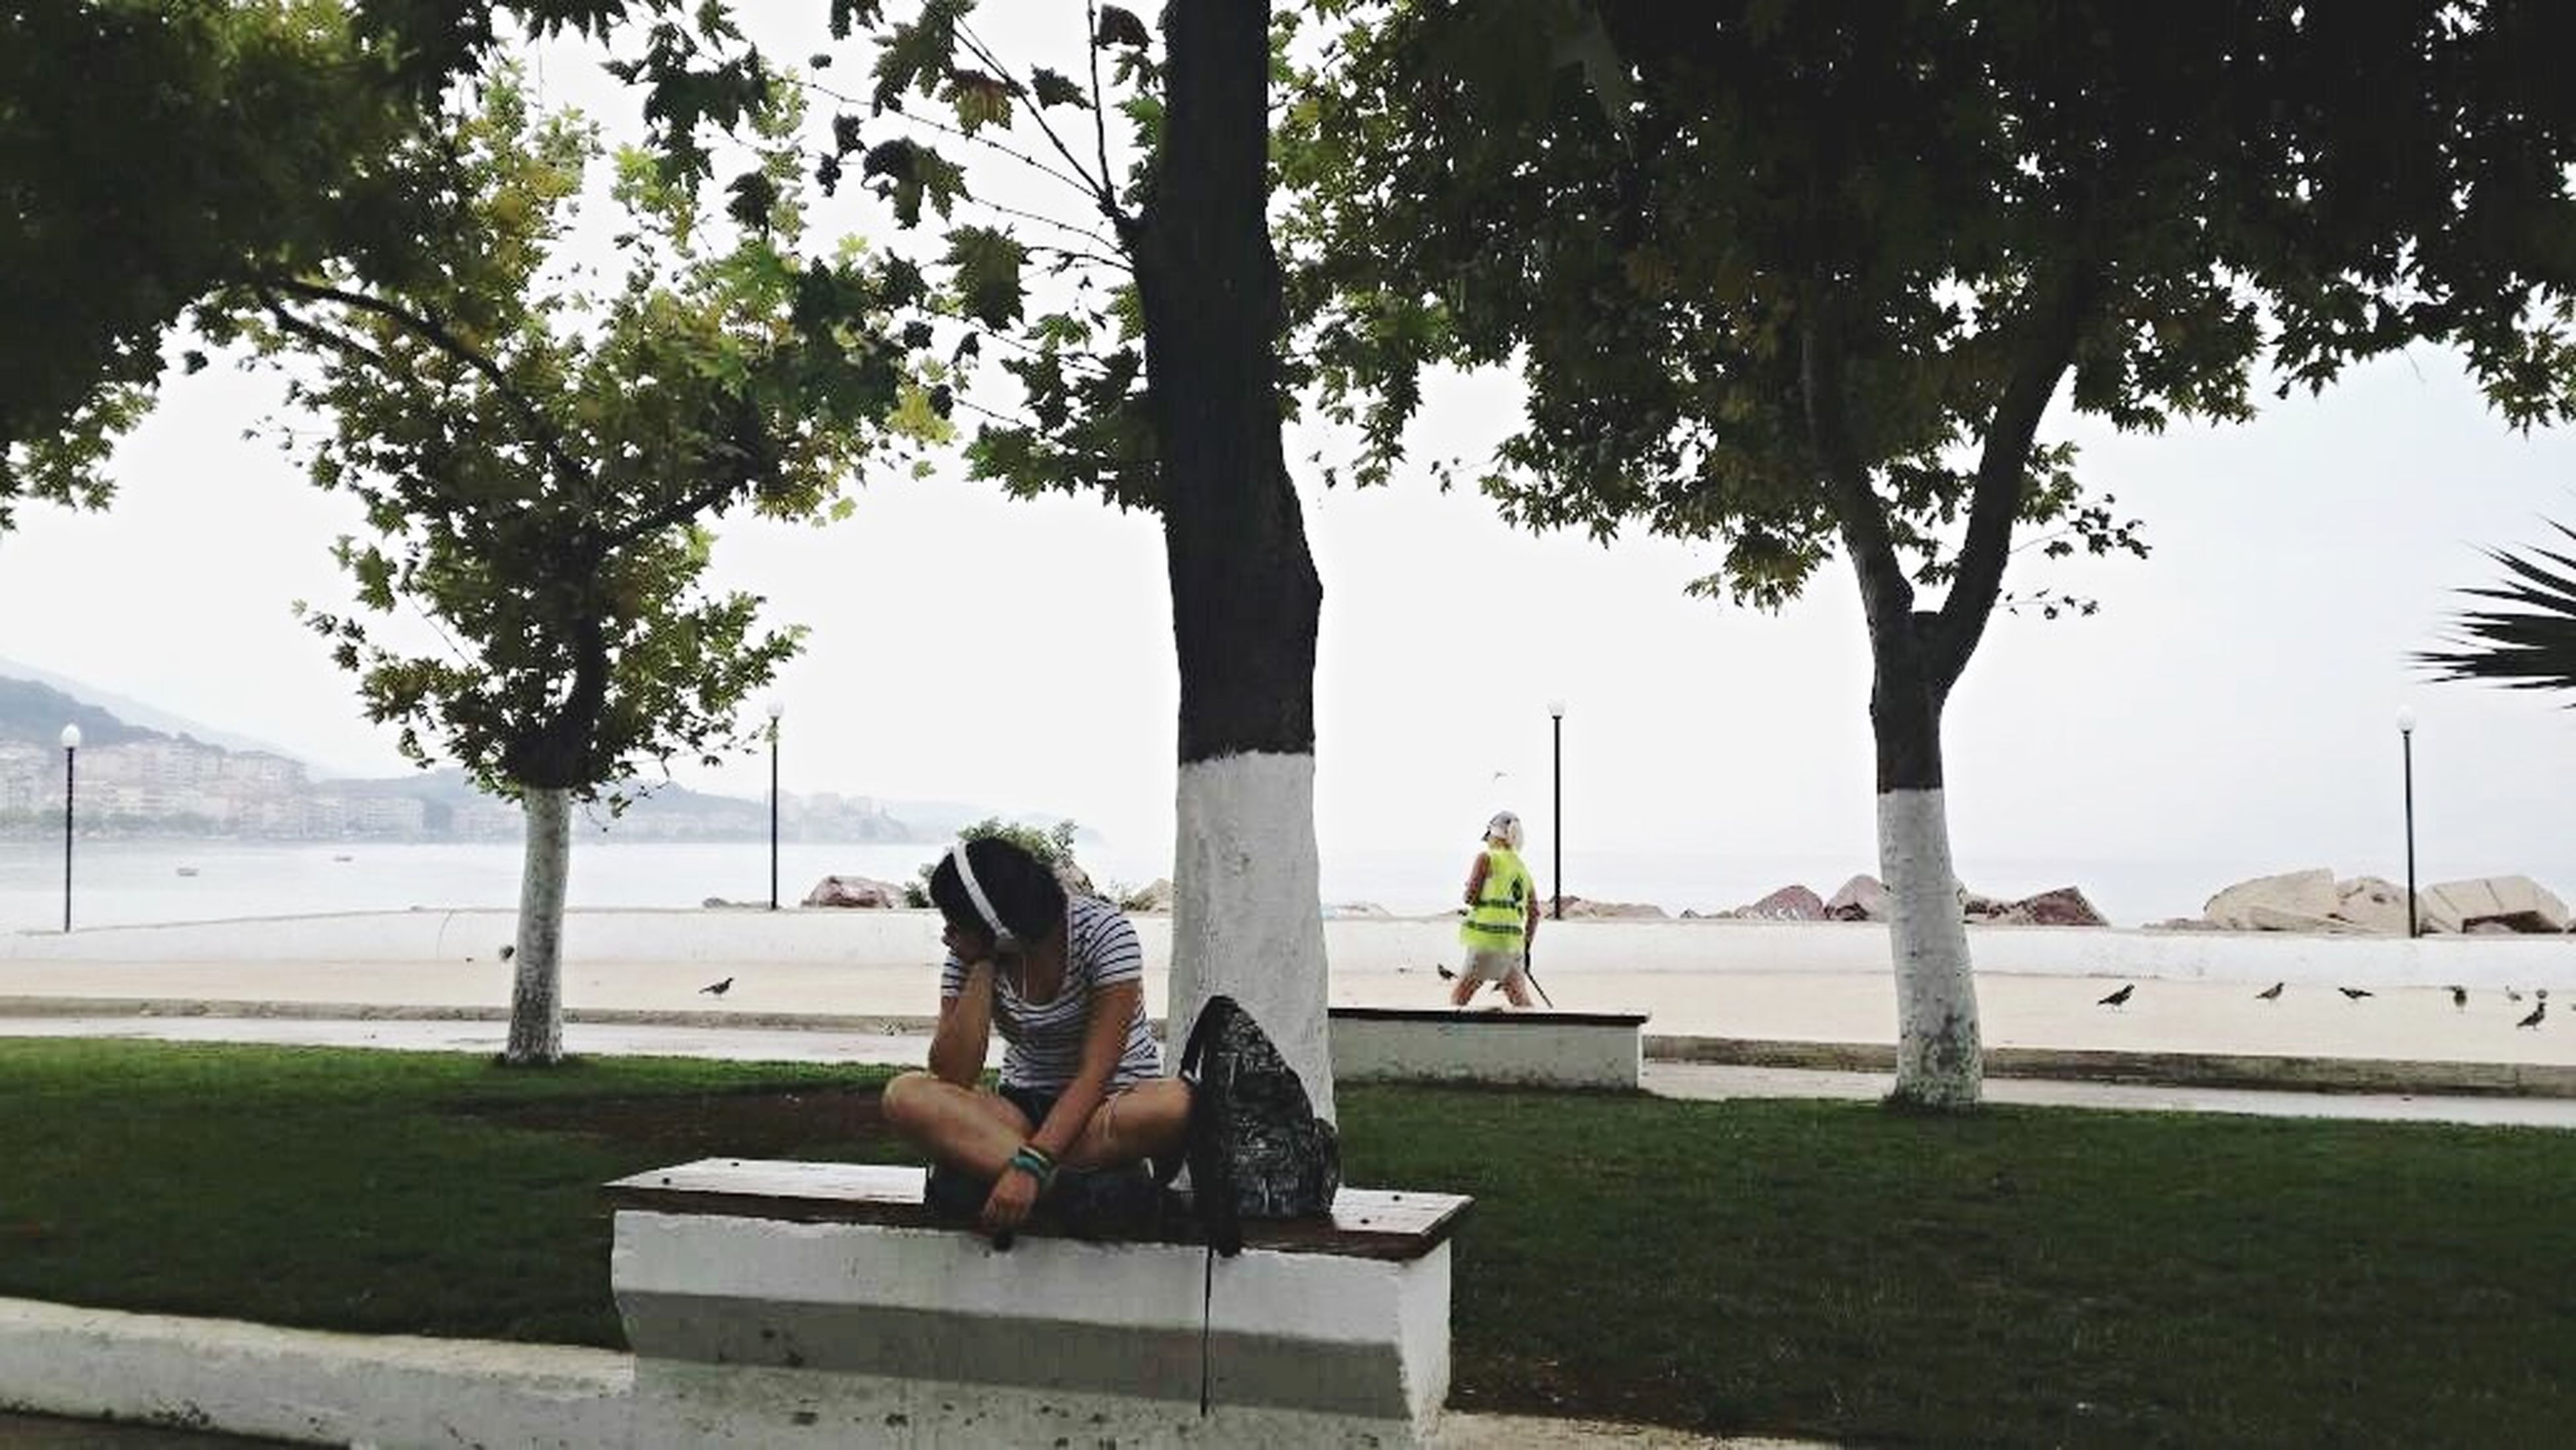 sitting, leisure activity, lifestyles, relaxation, tree, rear view, person, full length, bench, water, young adult, casual clothing, young women, grass, day, park - man made space, vacations, resting